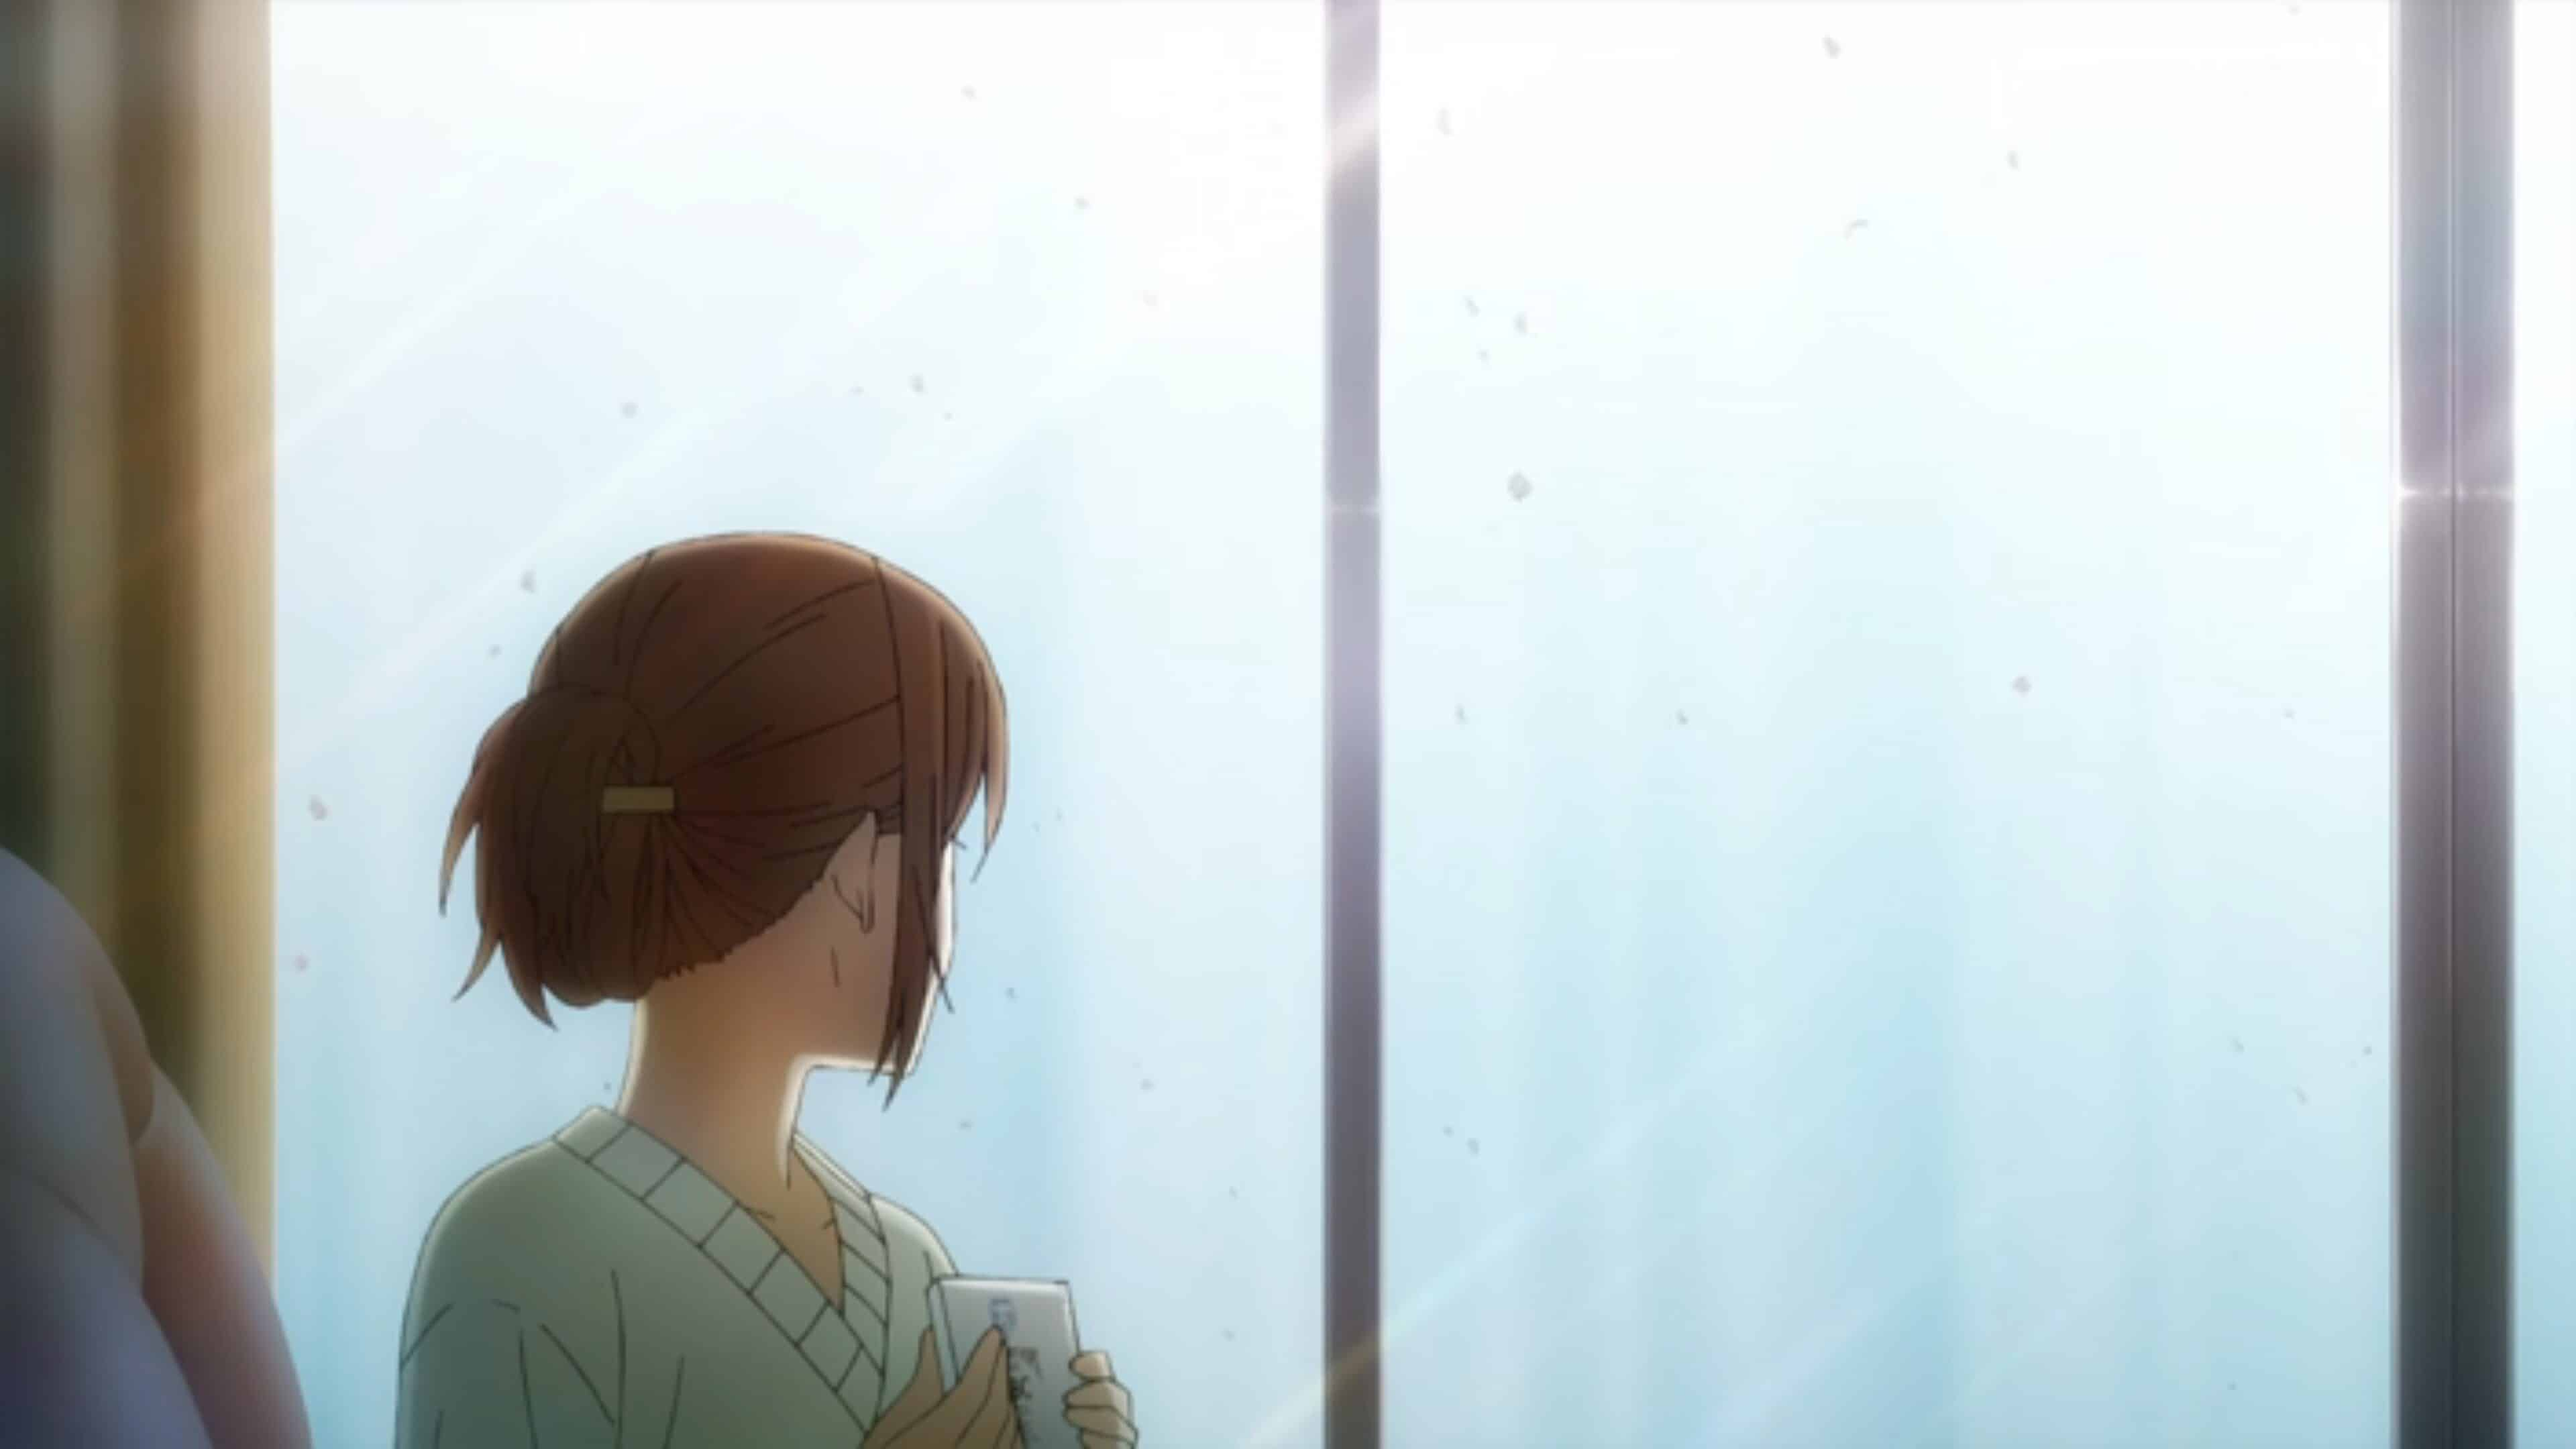 Hori looking out the window